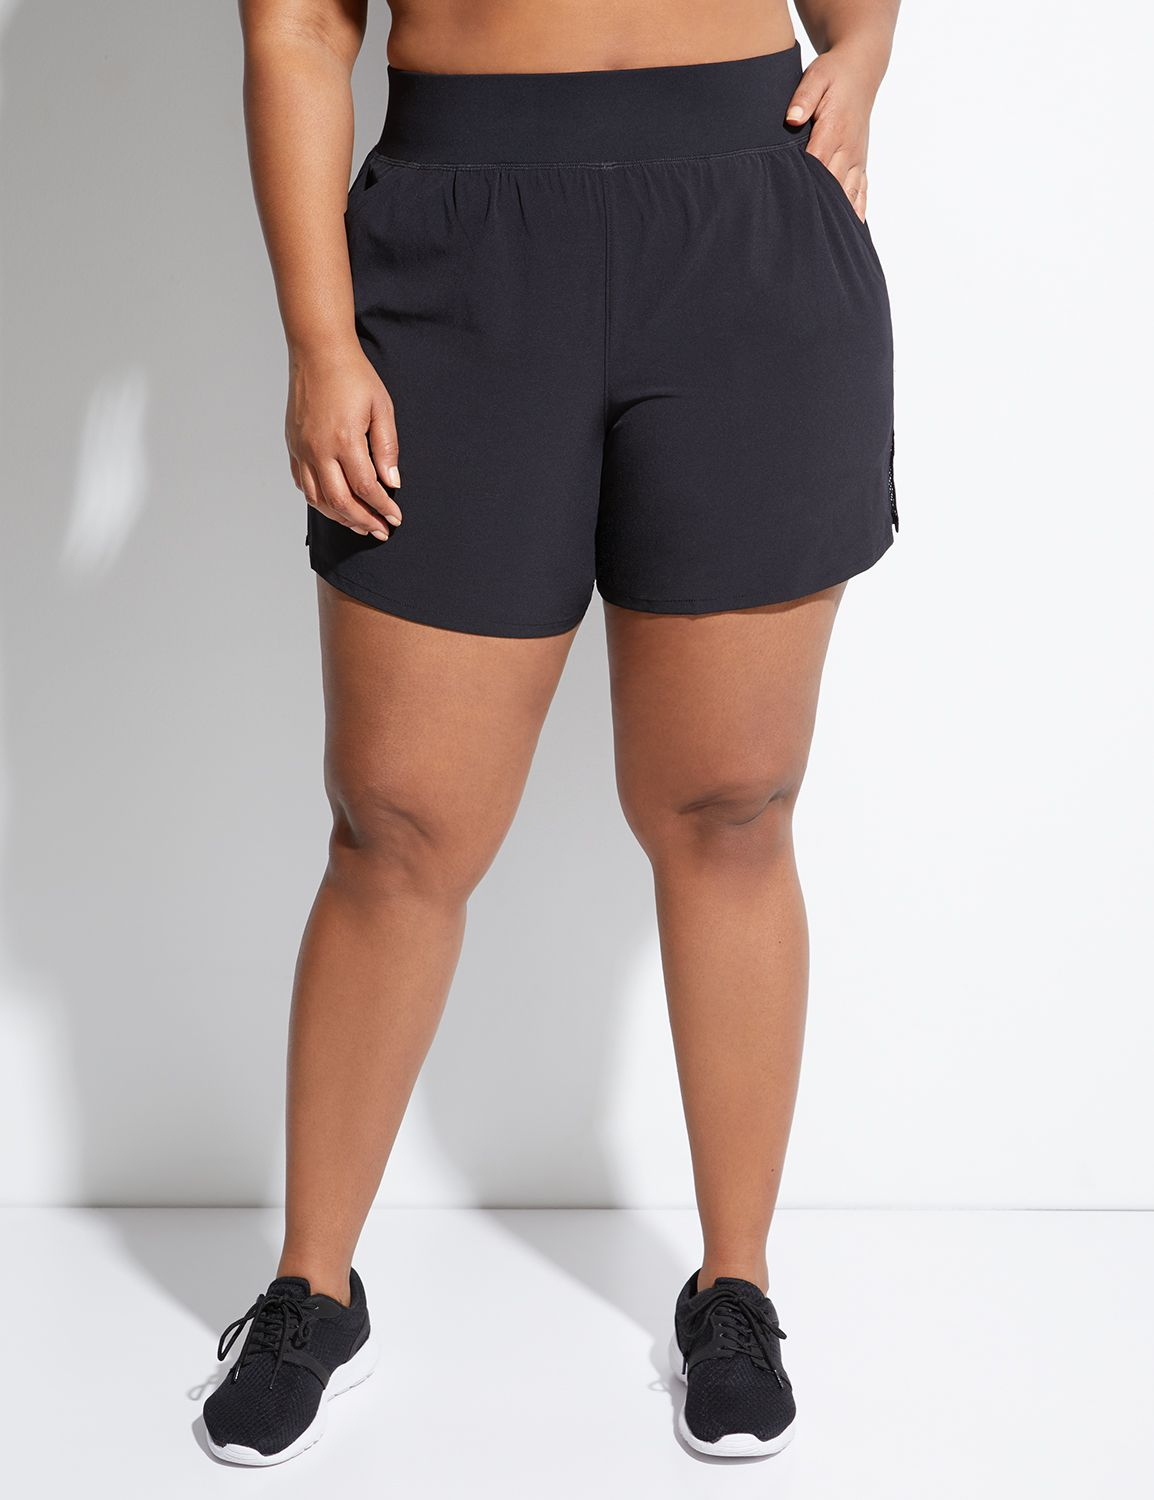 Lane Bryant Womens Cooling Woven Active Short 26/28 Pitch Black